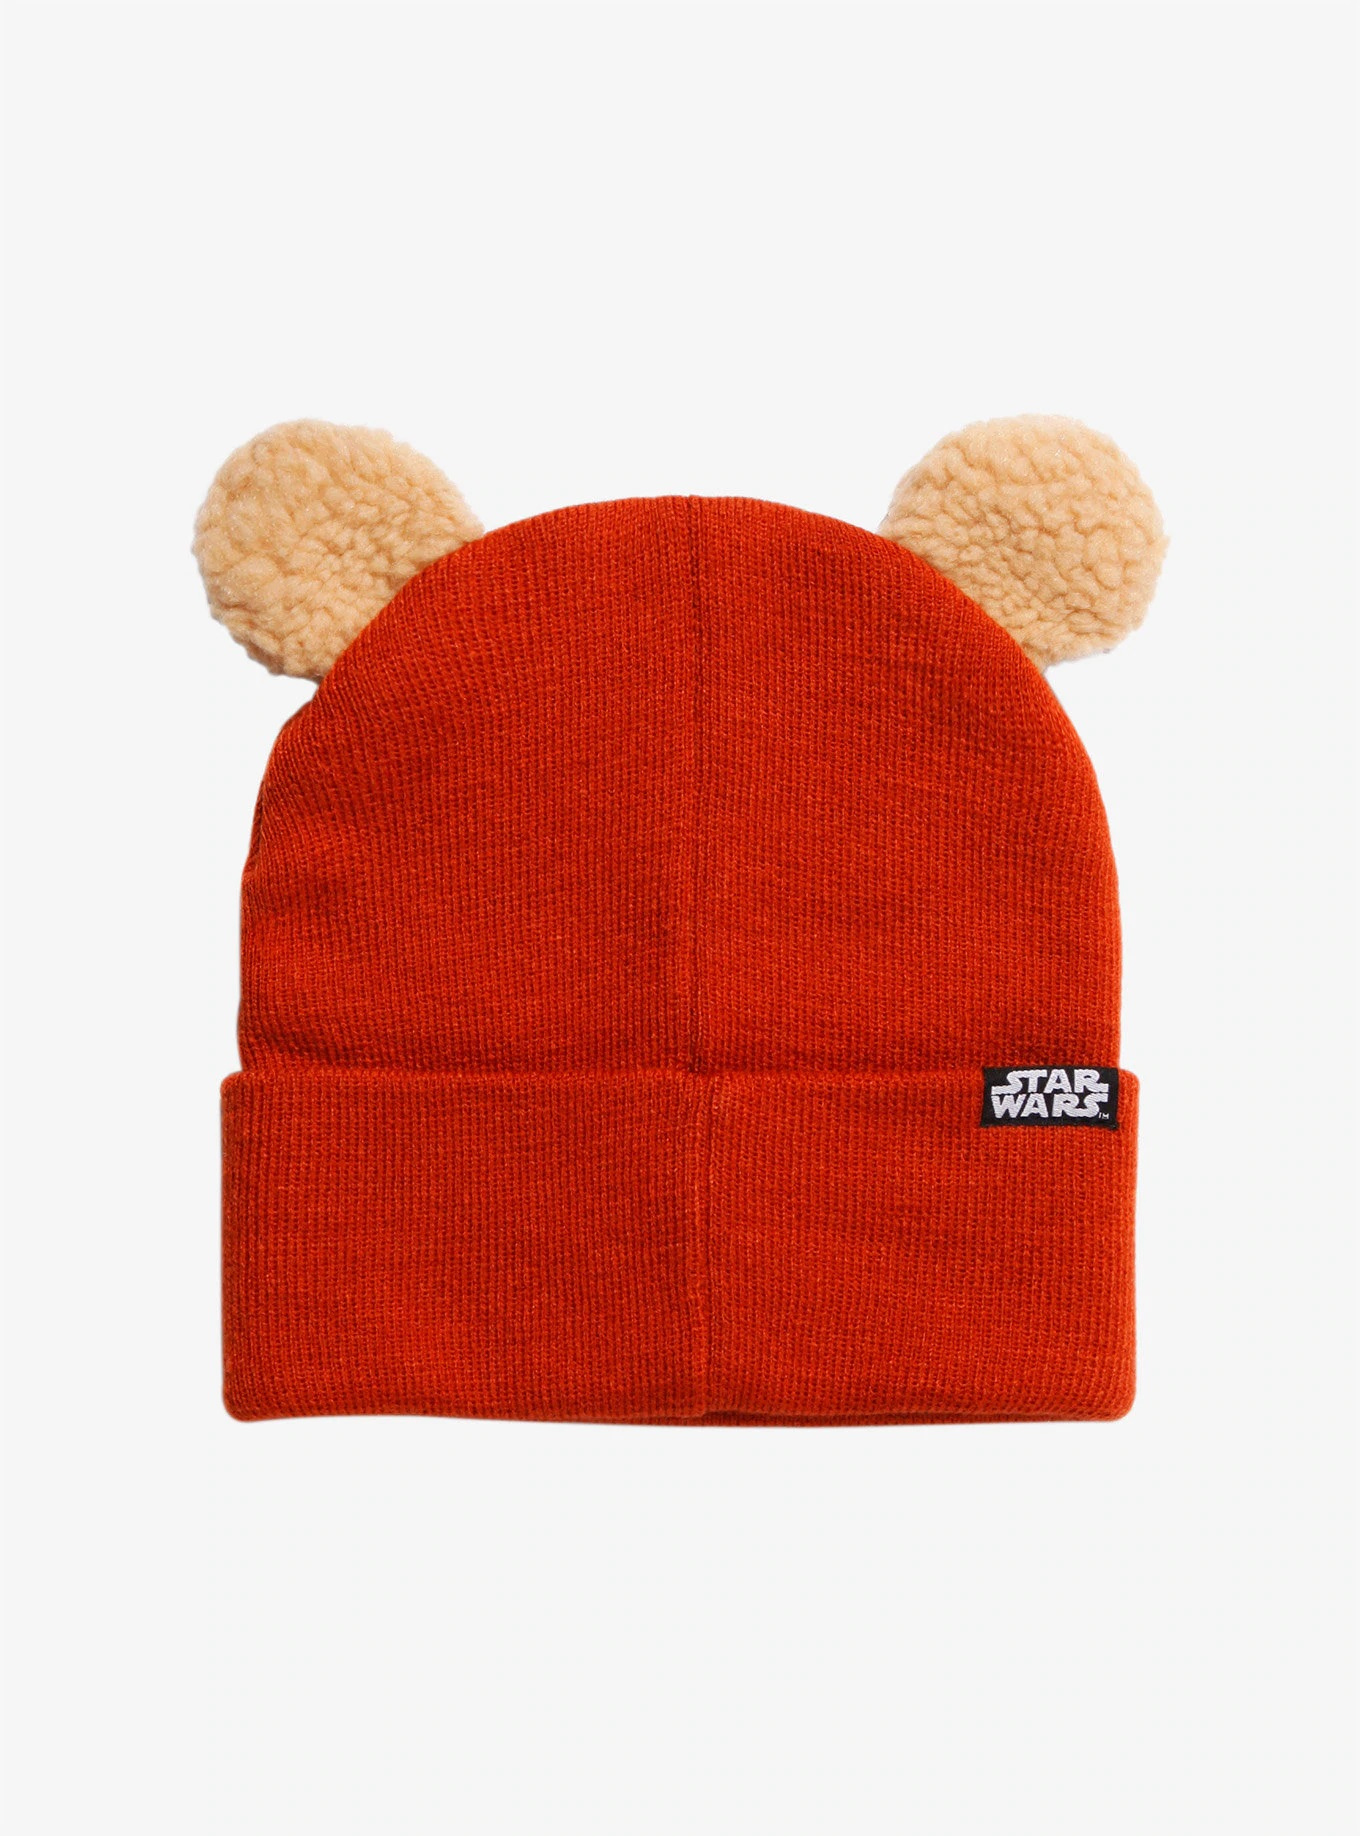 Star Wars Wicket Ewok Beanie at Box Lunch